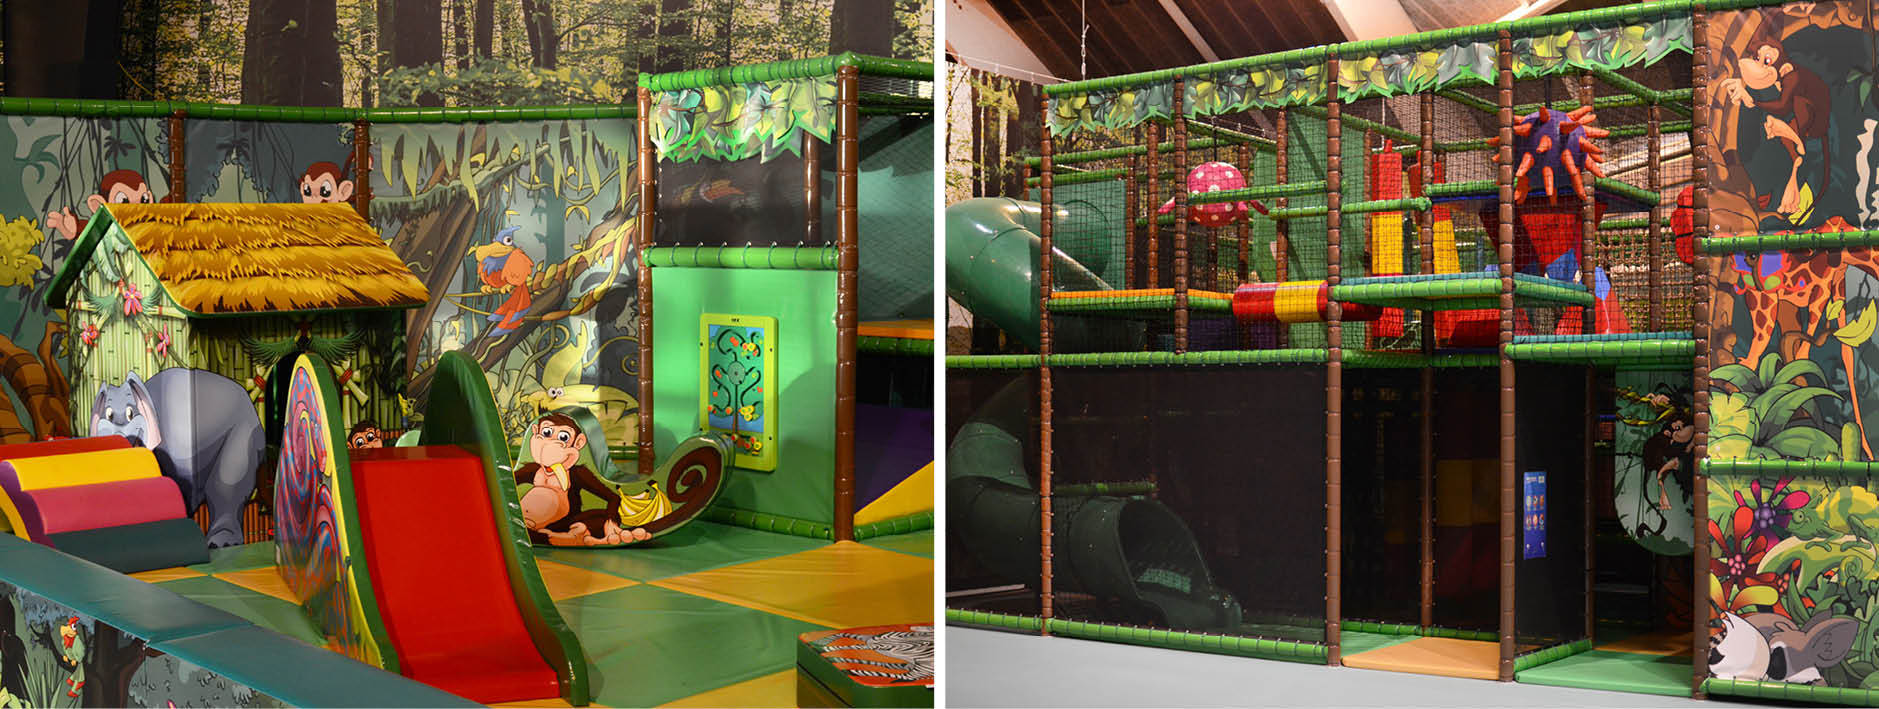 Soft play en speelstructuur